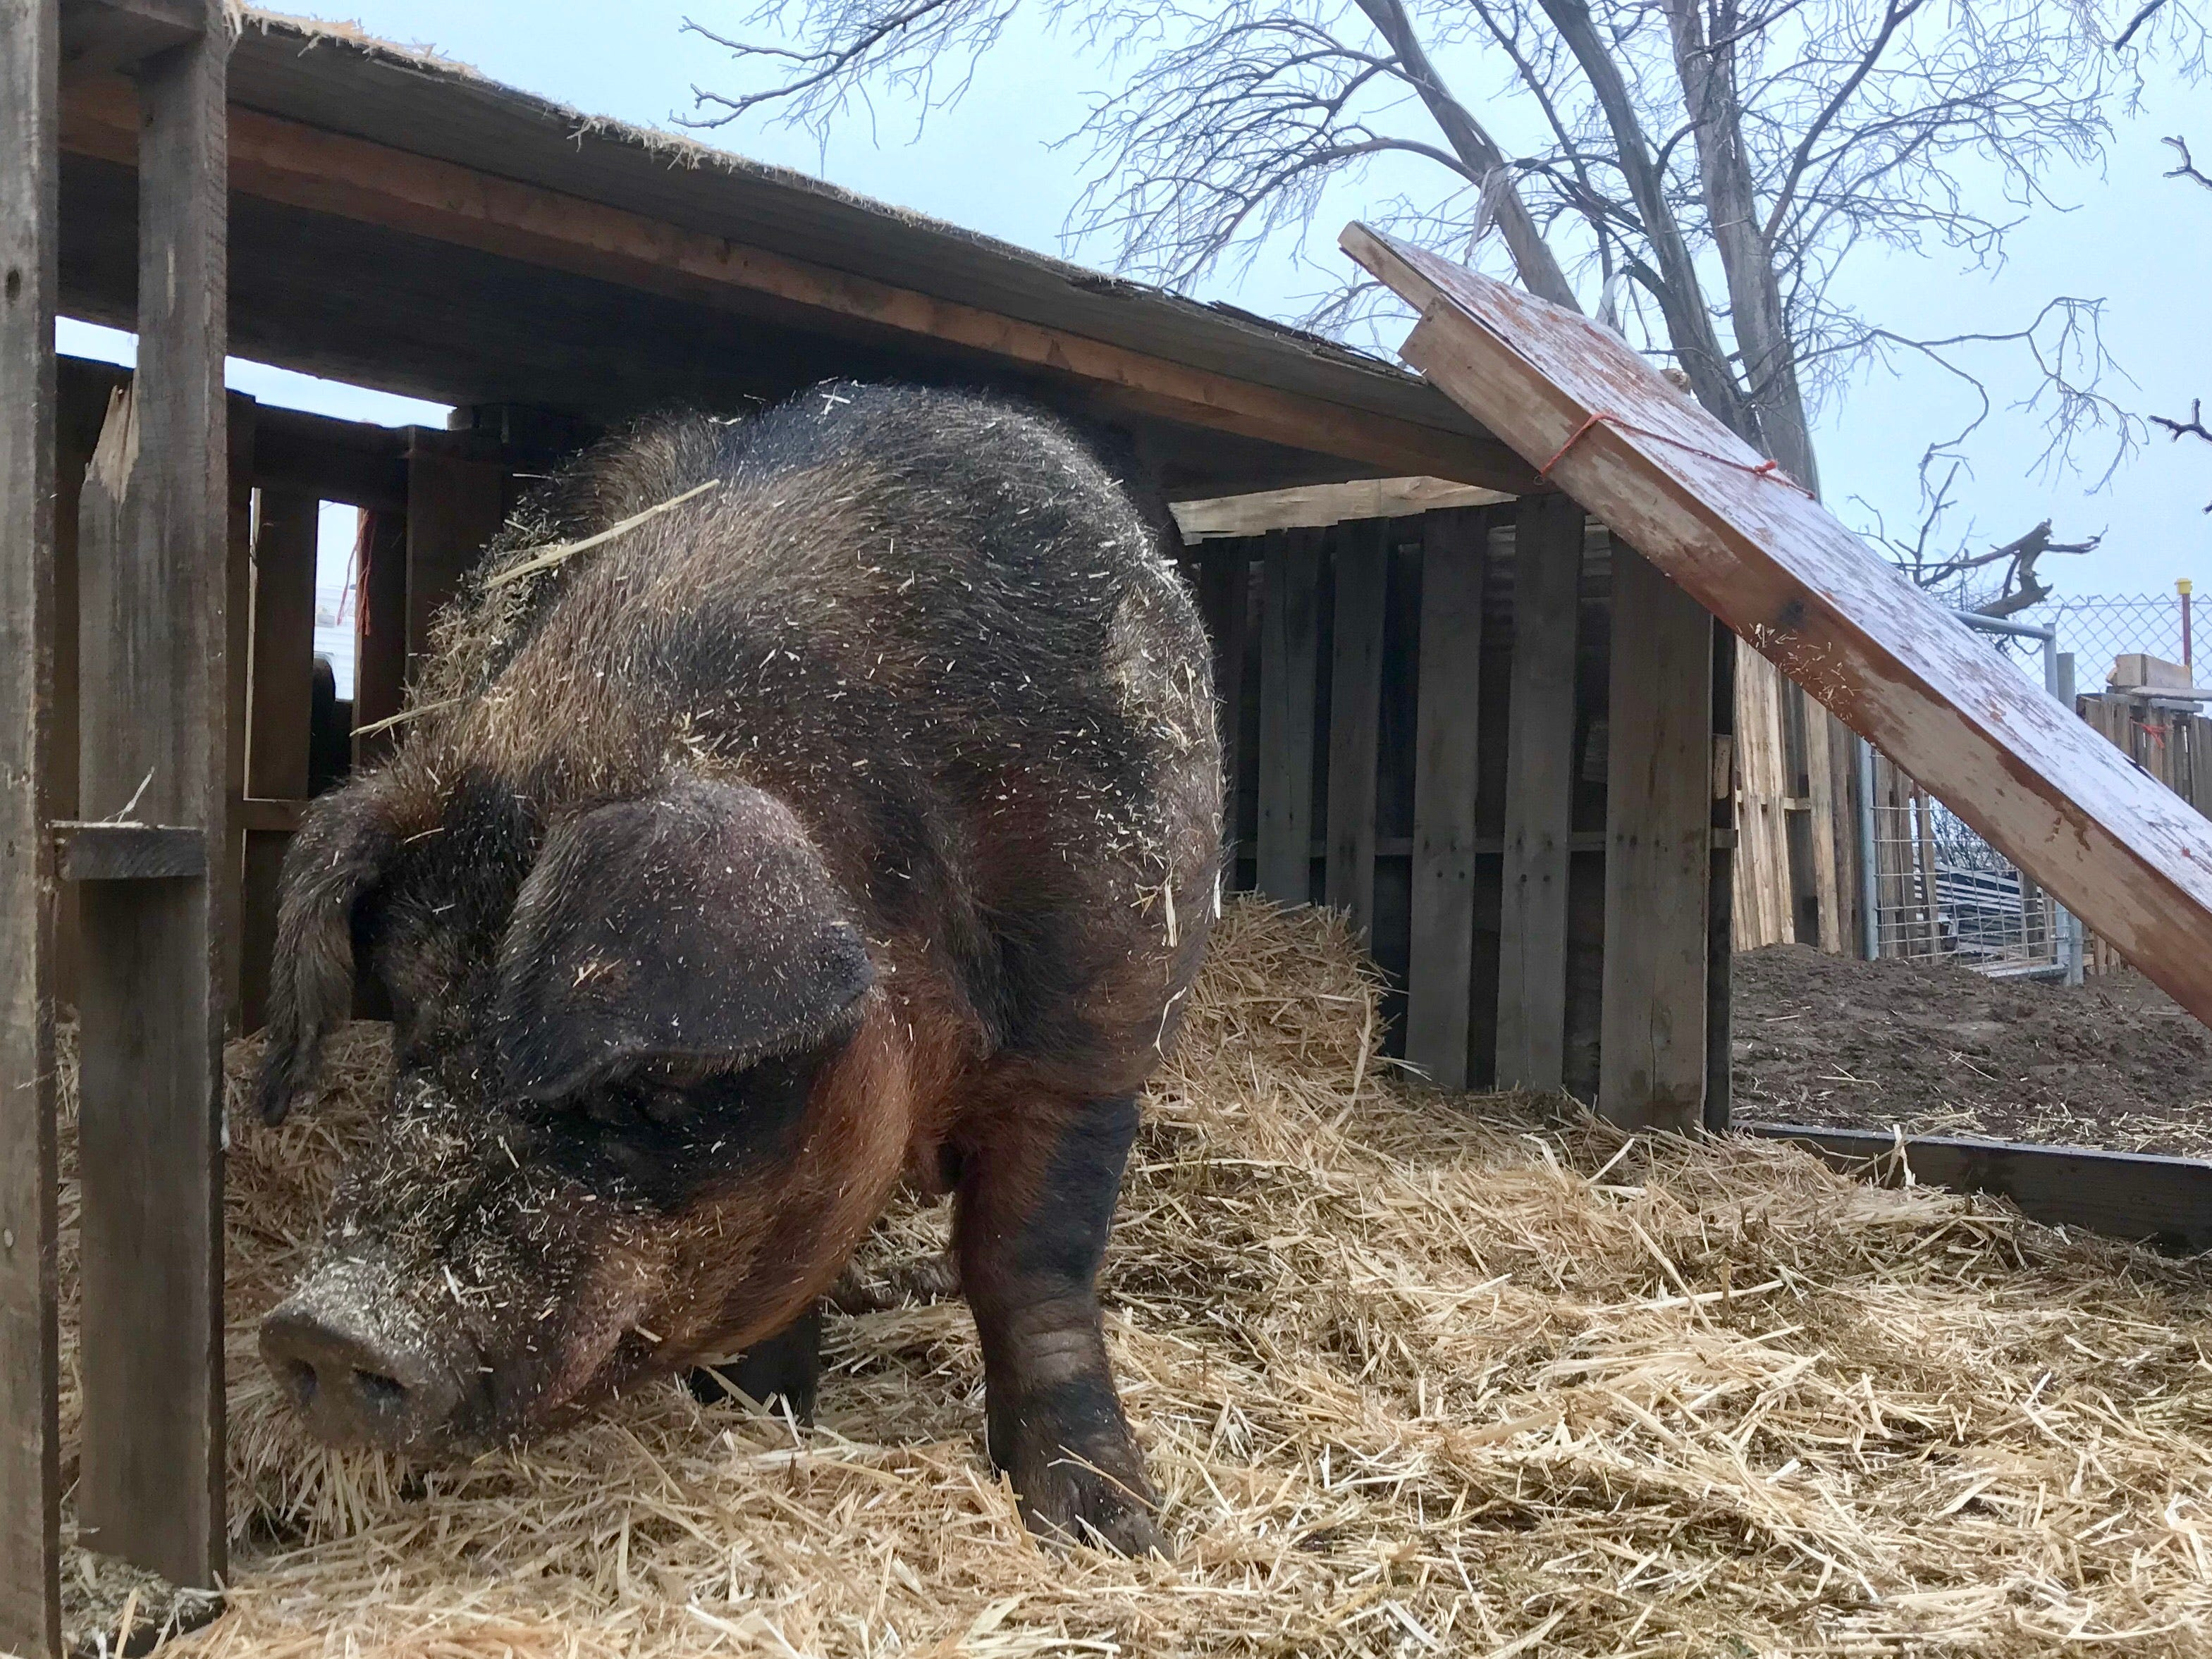 Halfton, a very big pig rescued from a Ventura County bike trail, is shown in his pen in San Diego County. After Halfton is fixed, he'll join enjoy life with an existing herd of rescued farm pigs at Steampunk Farms Rescue Barn.